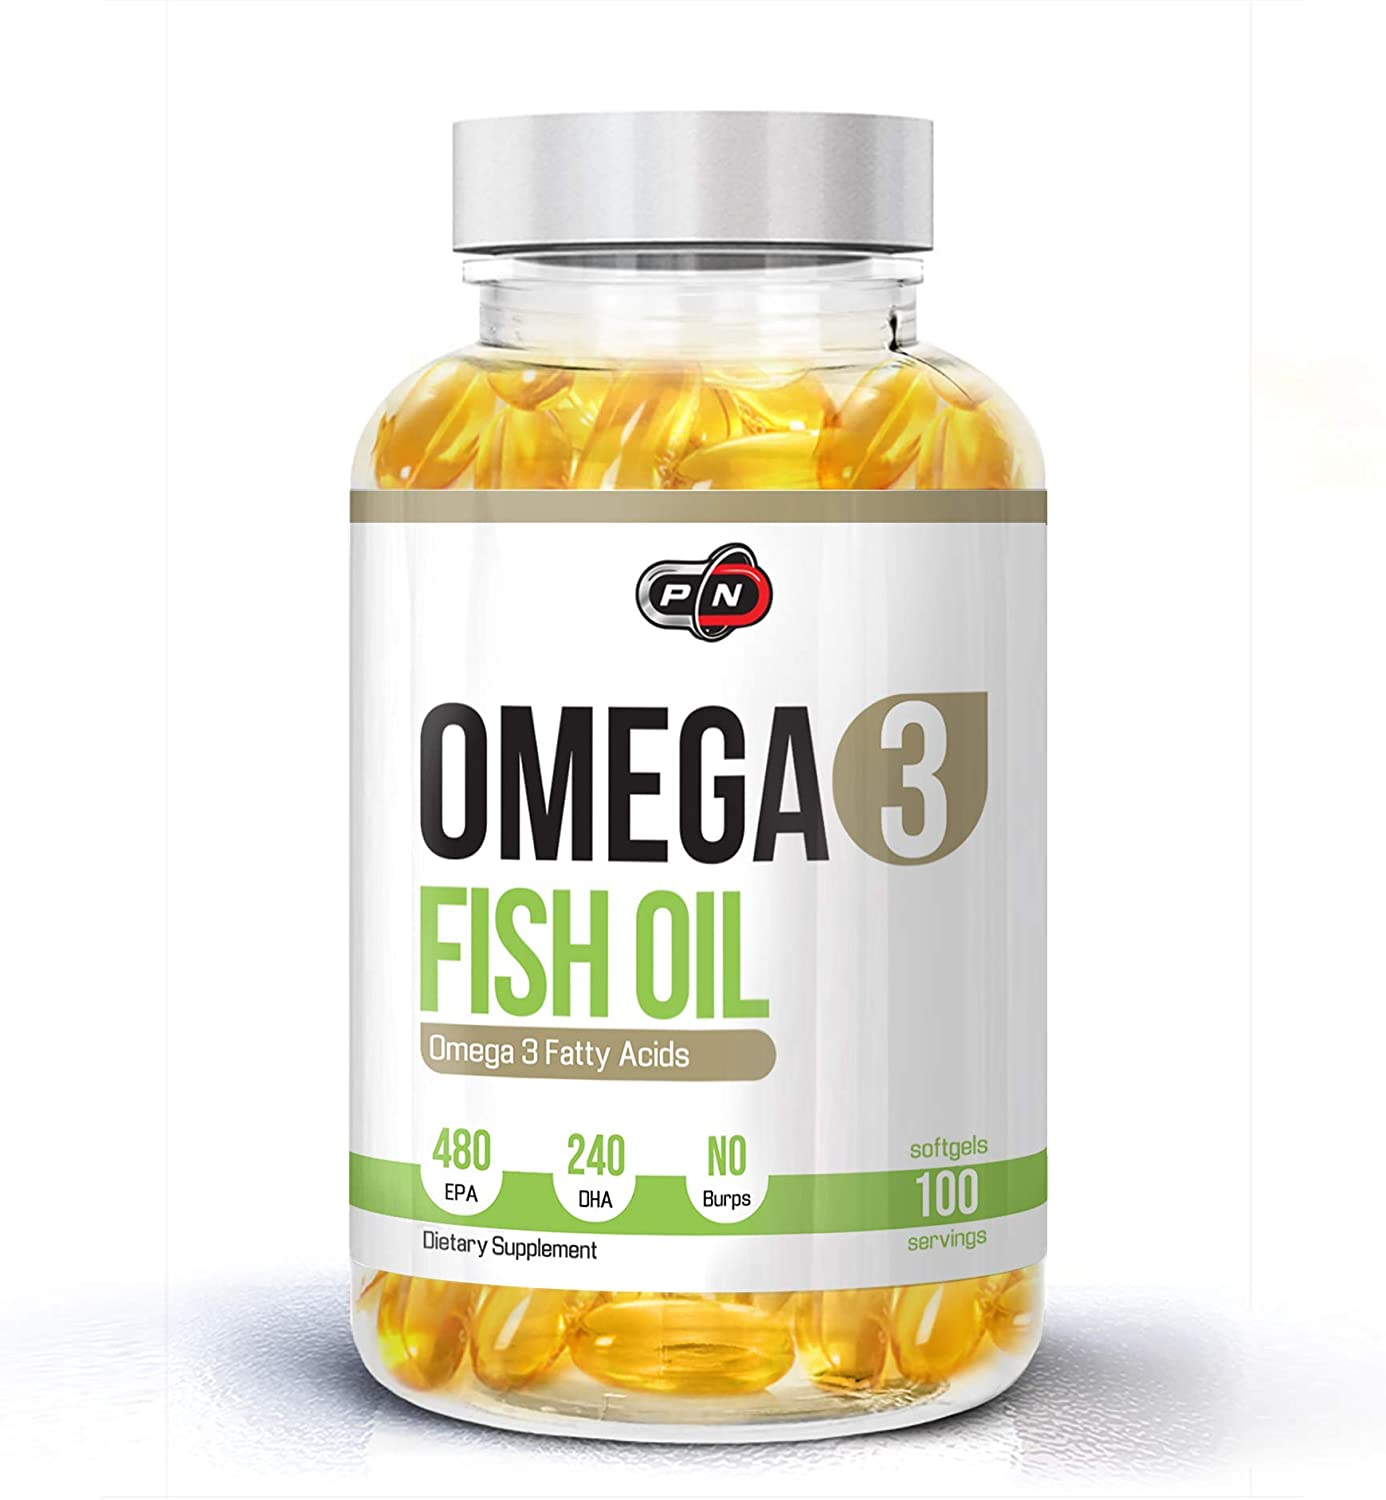 Omega 3 Fish Oil 1200mg Capsules 480 EPA 240 DHA High Strength Concentration Premium Quality Essential Fatty Acids Supplement Softgels Burpless 50 100 200 300 Servings